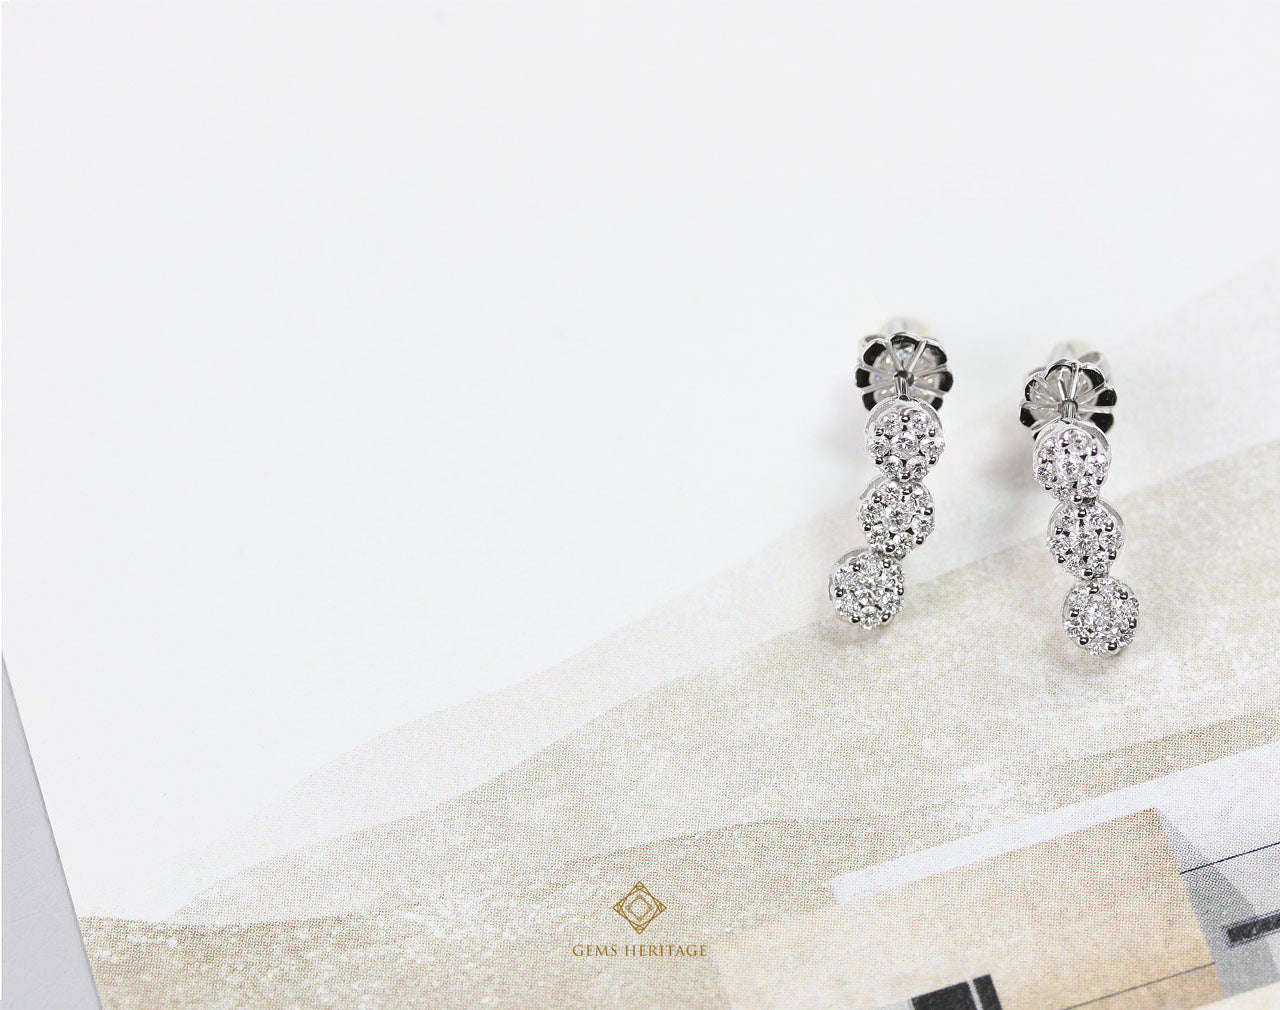 Three Round illusion setting diamond earrings